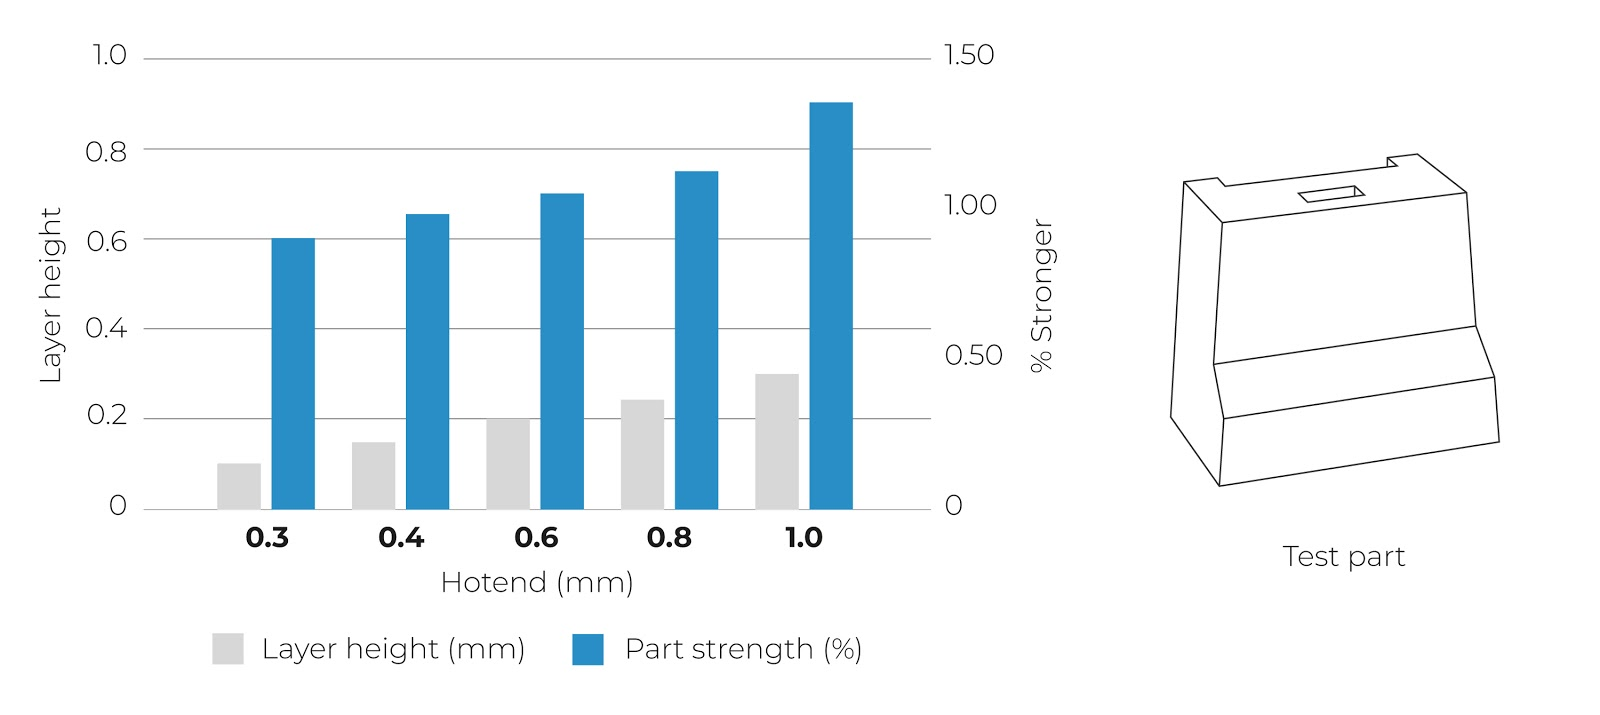 Layer height and part strength